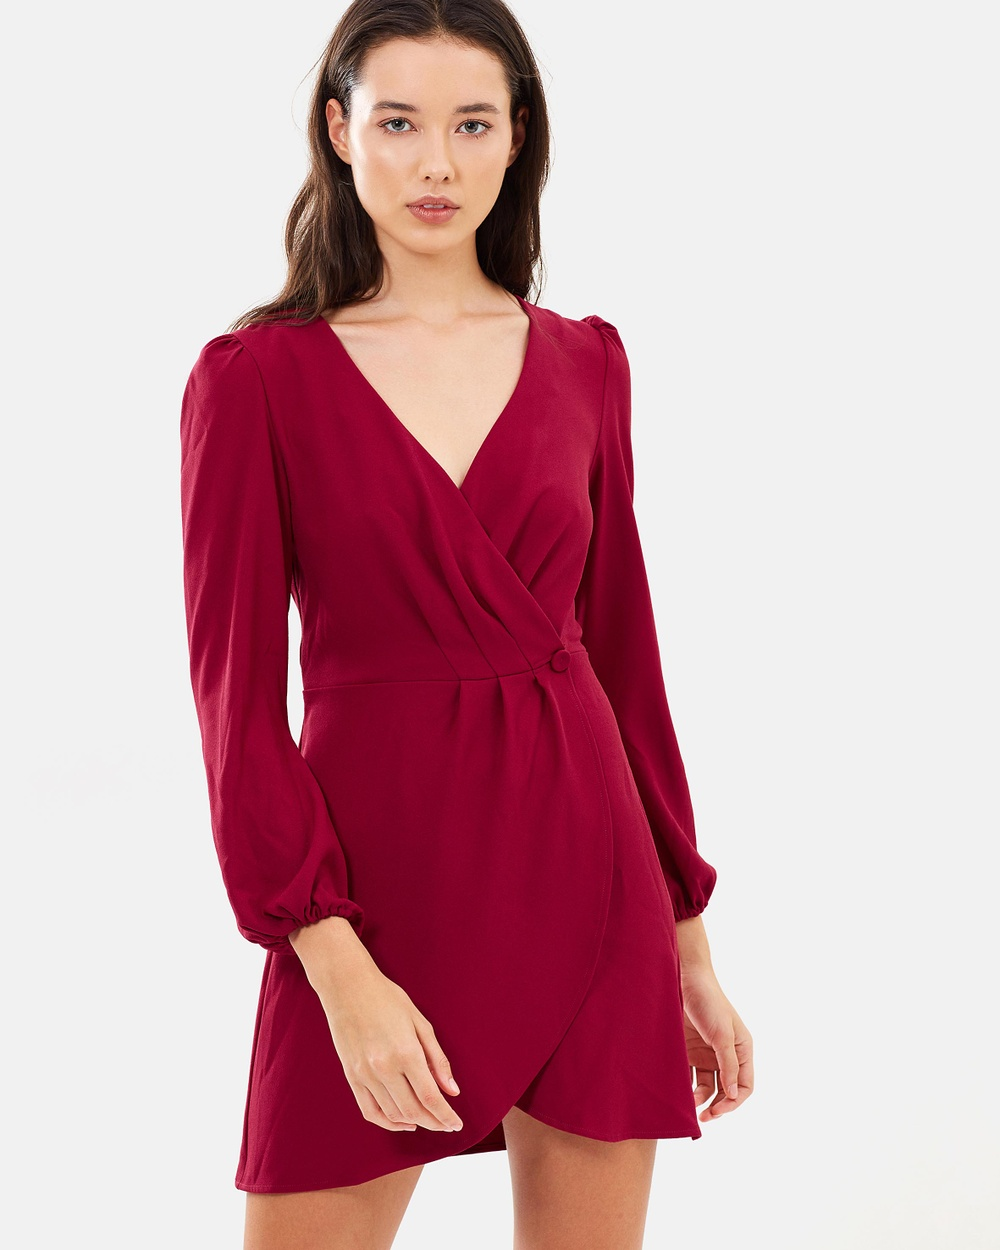 The Fifth Label Chemistry LS Wrap Dress Dresses Berry Chemistry LS Wrap Dress